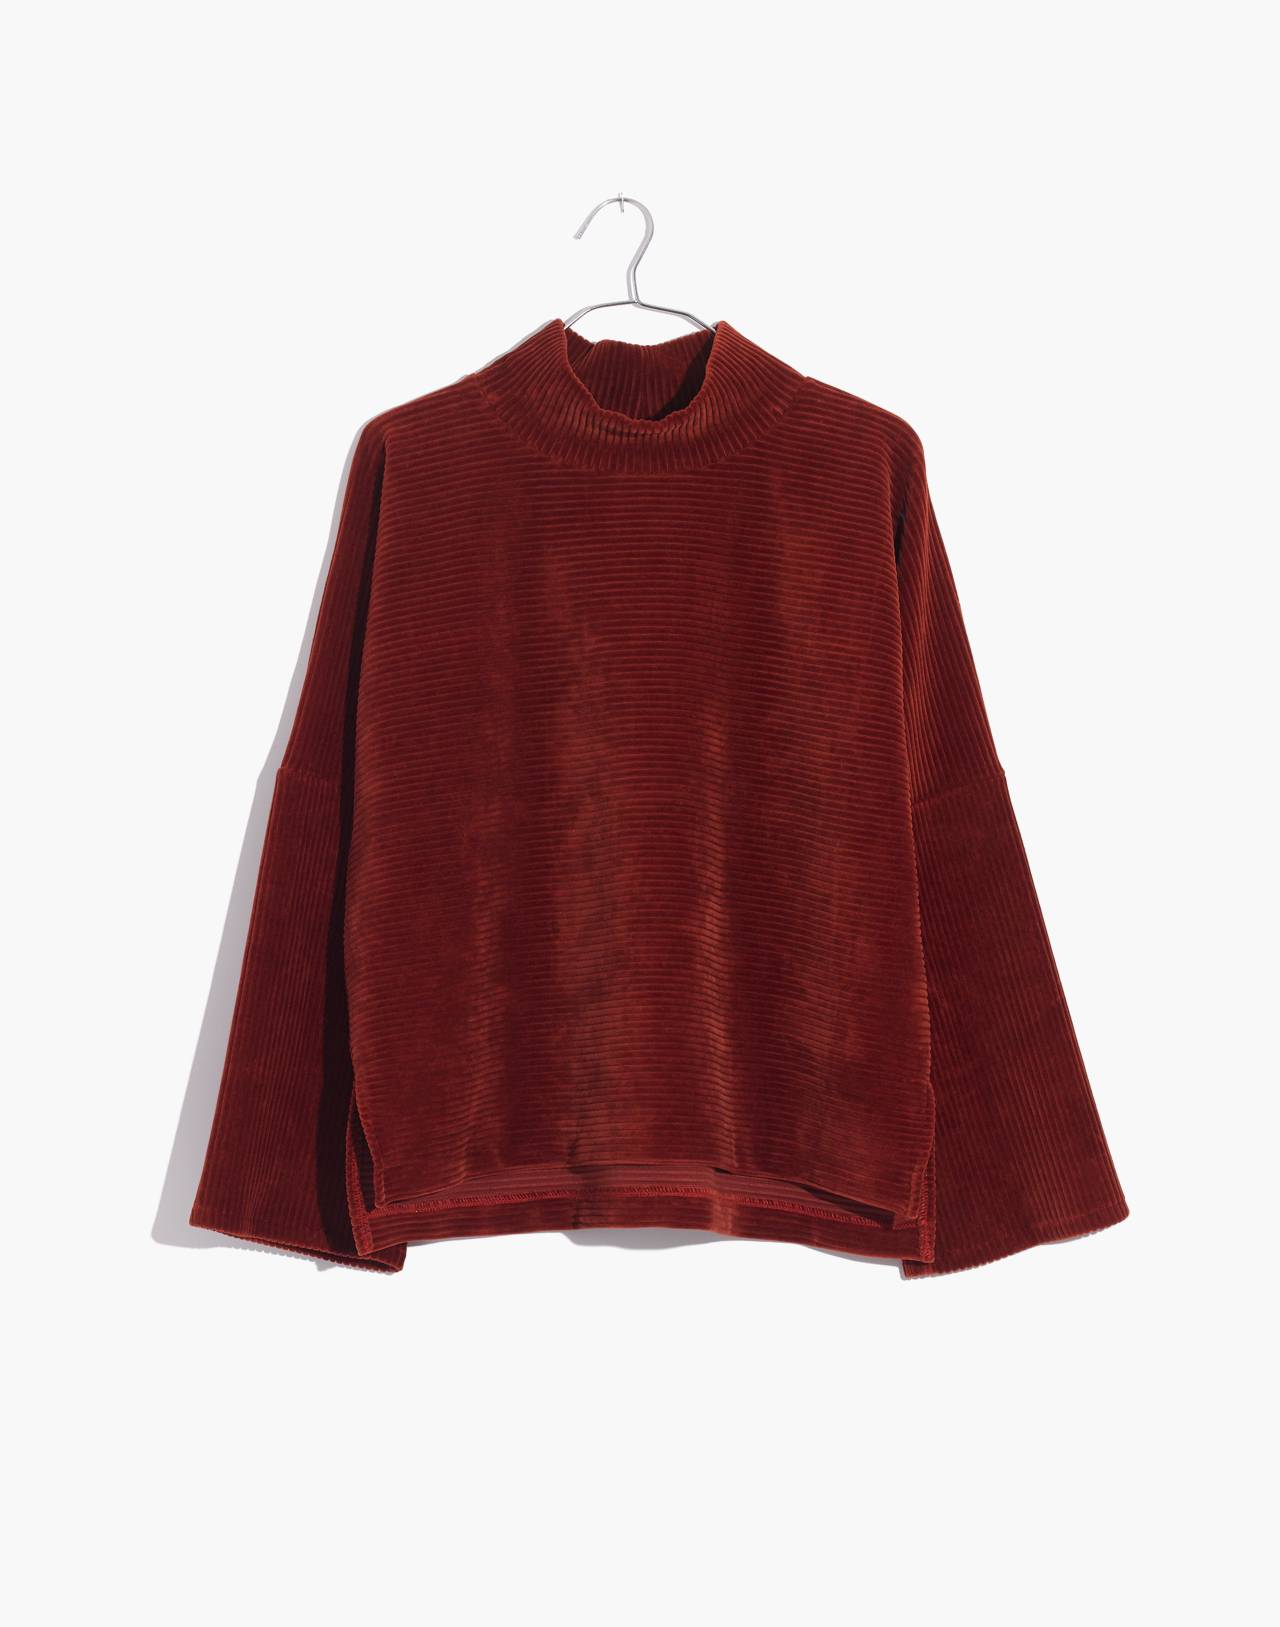 Texture & Thread Velour Corduroy Mockneck Top in canterbury red image 1